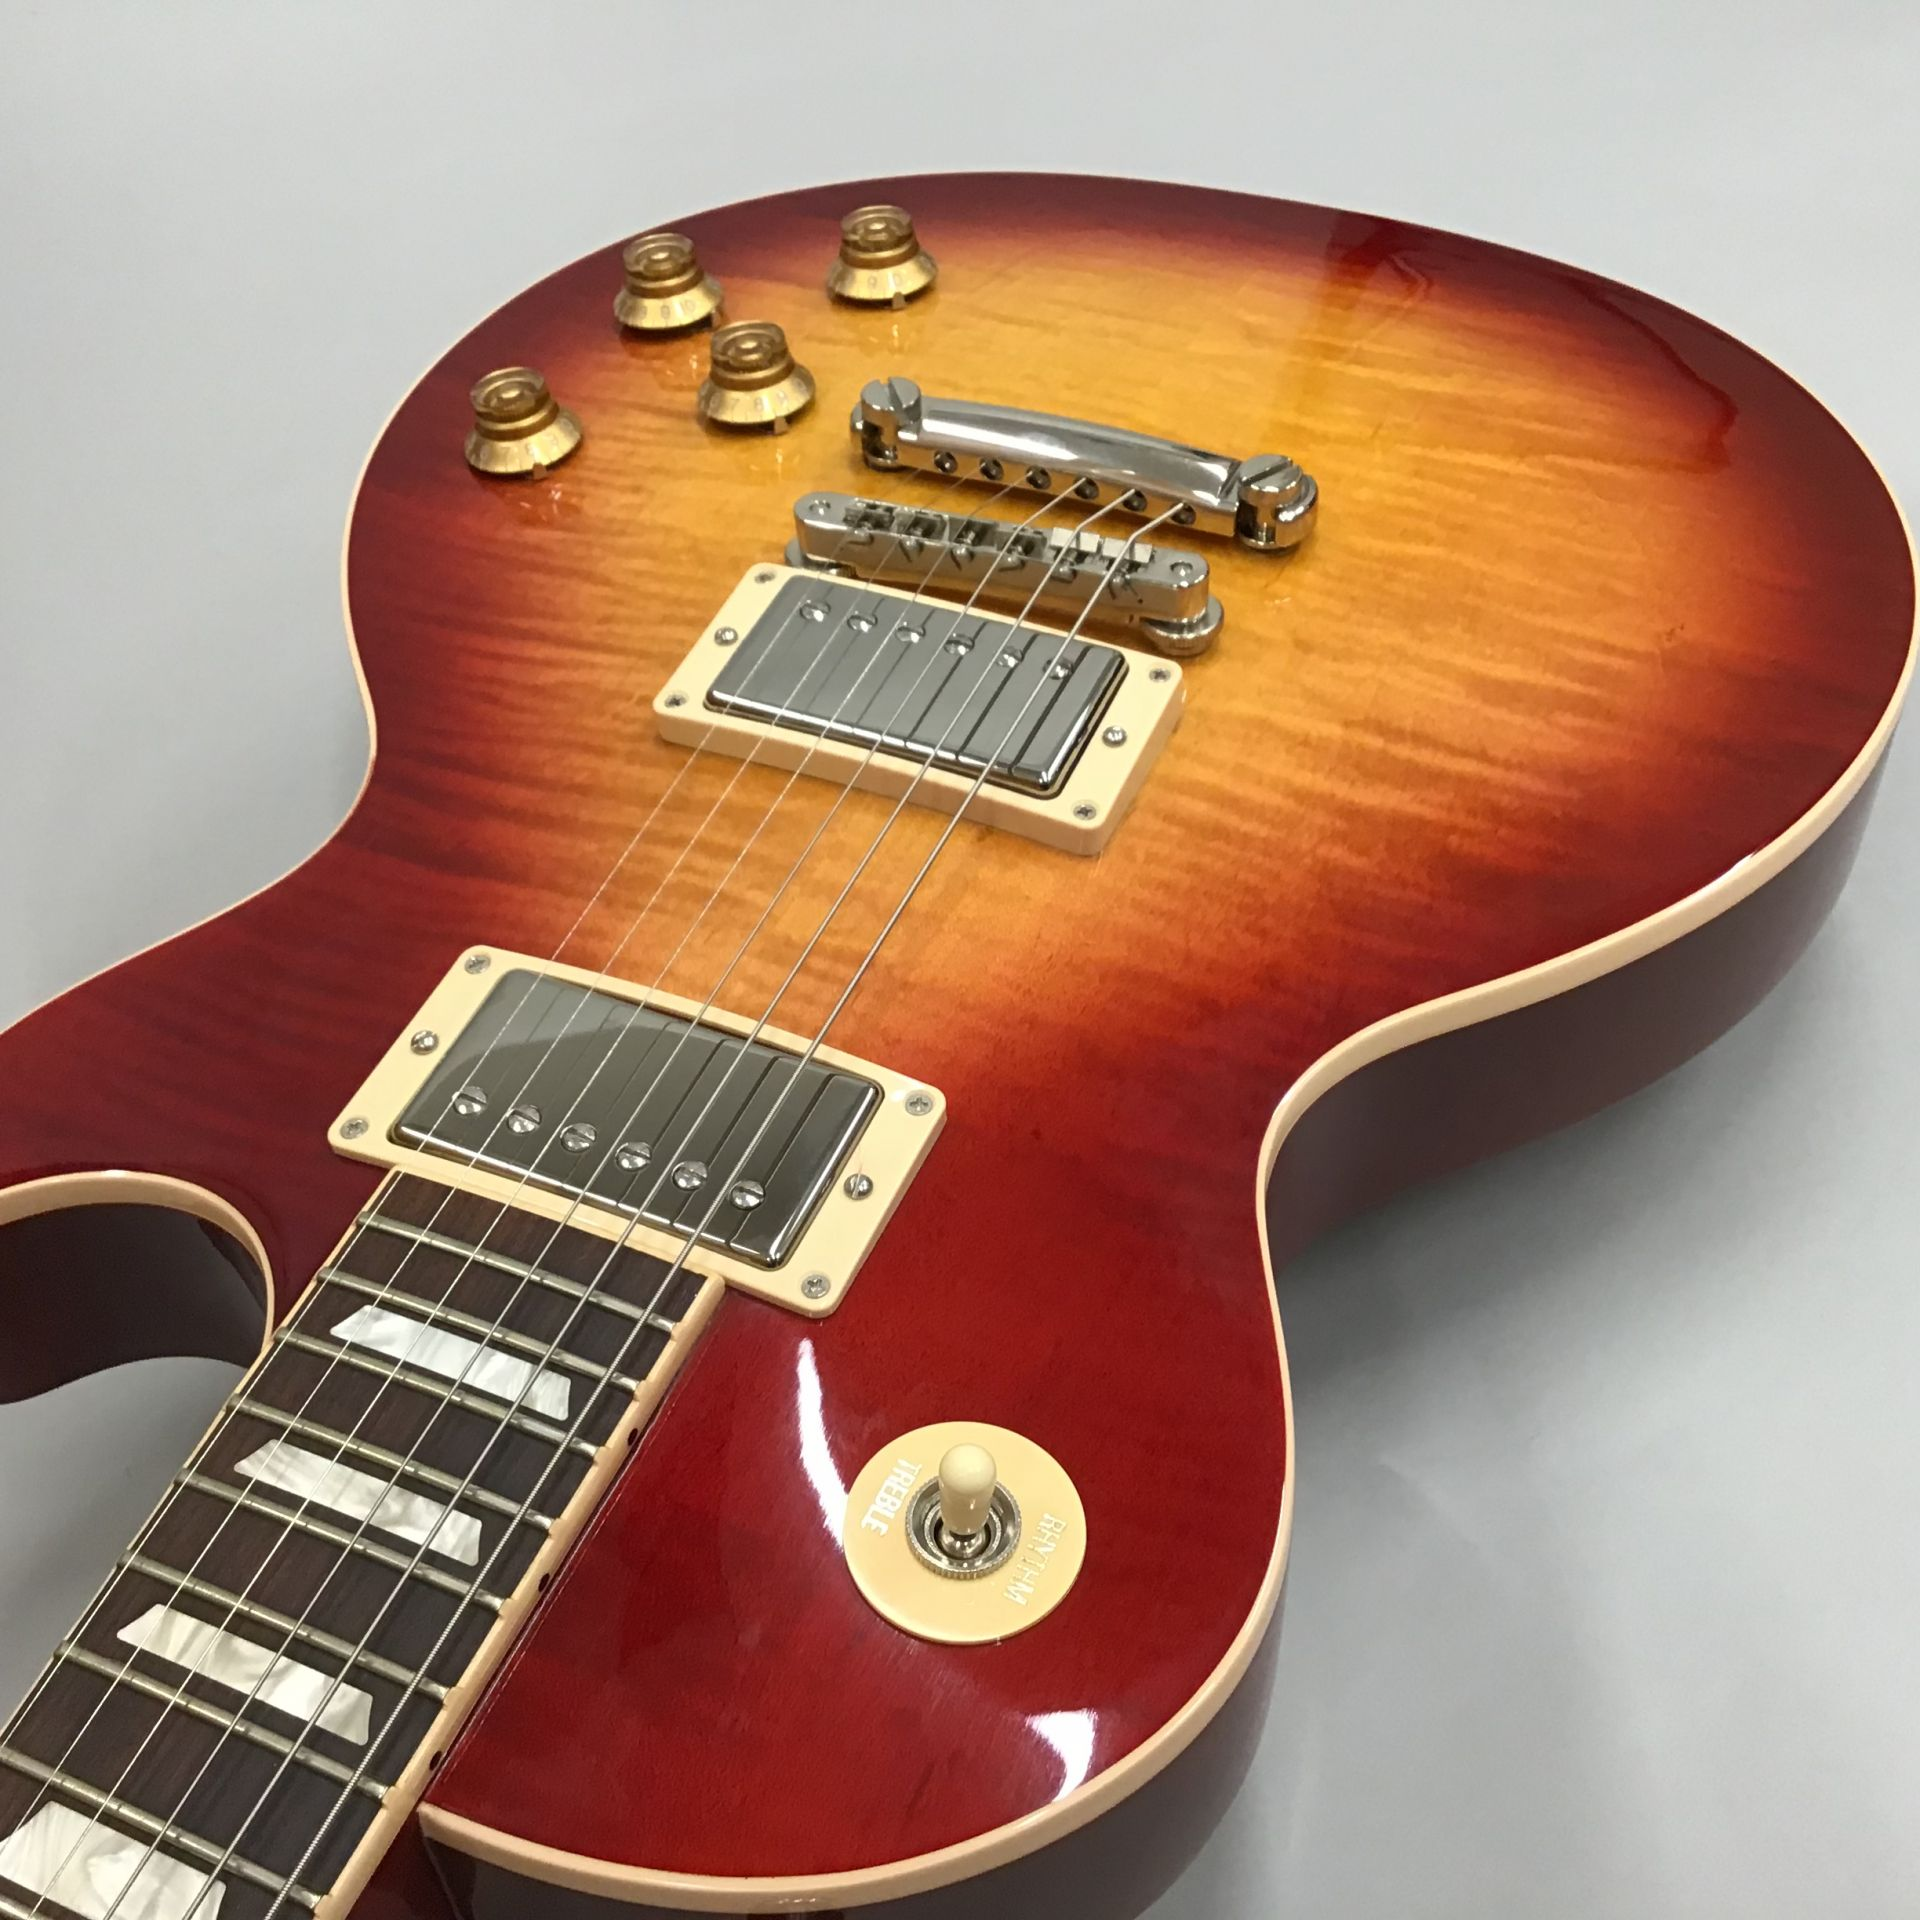 Les Paul Traditional 2018のケース・その他画像